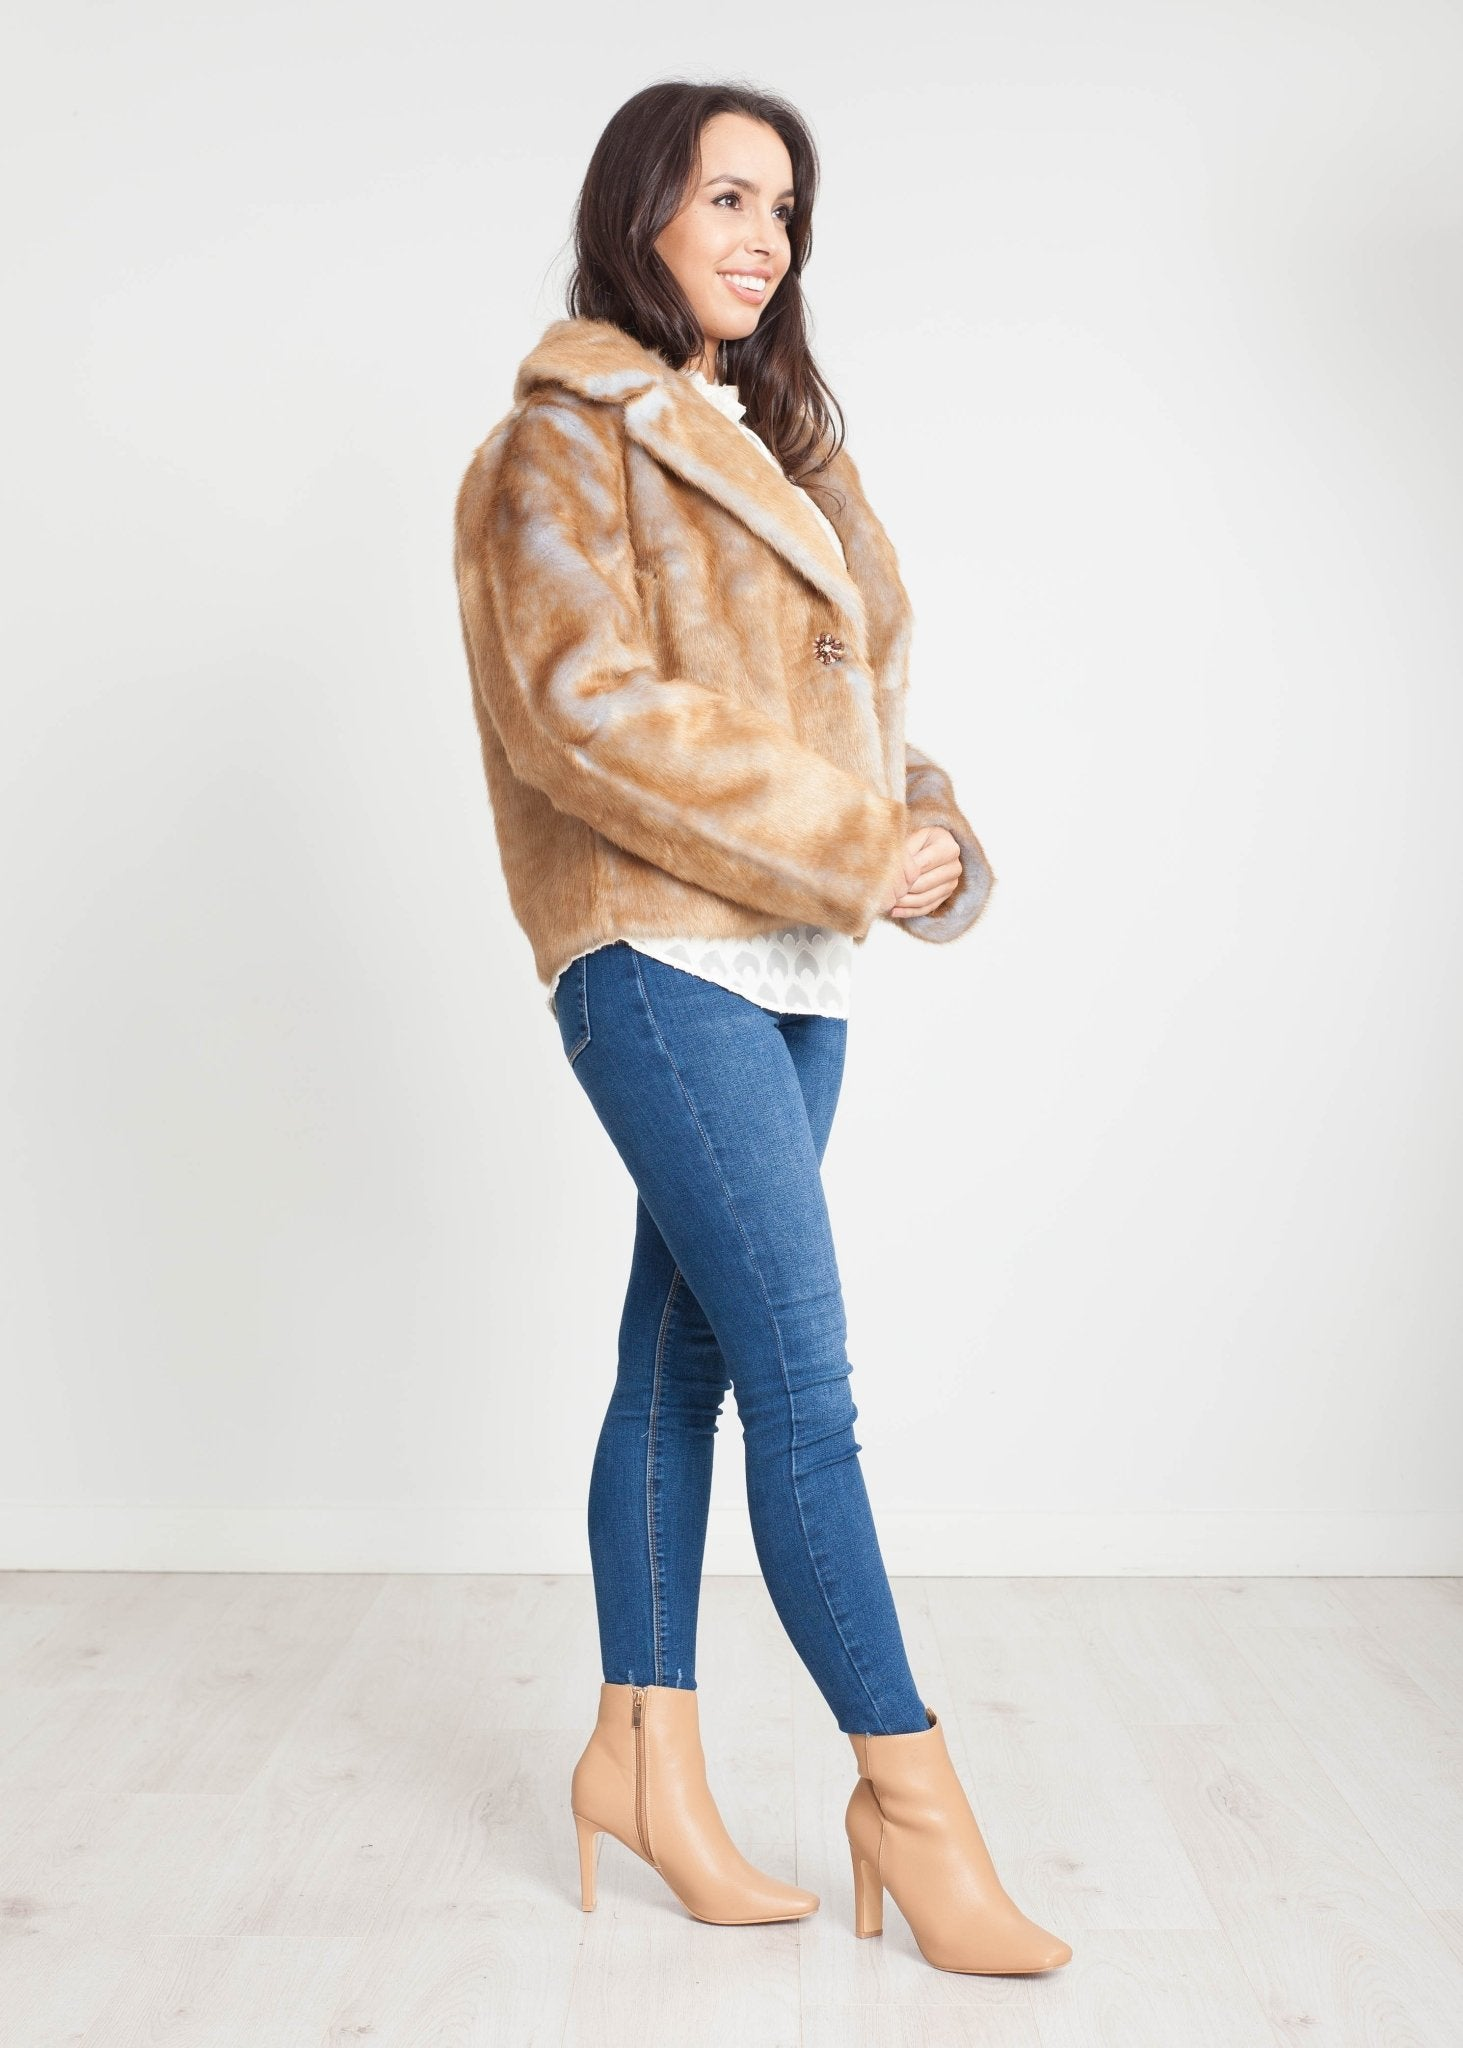 Tina Faux Fur Jacket In Gold - The Walk in Wardrobe